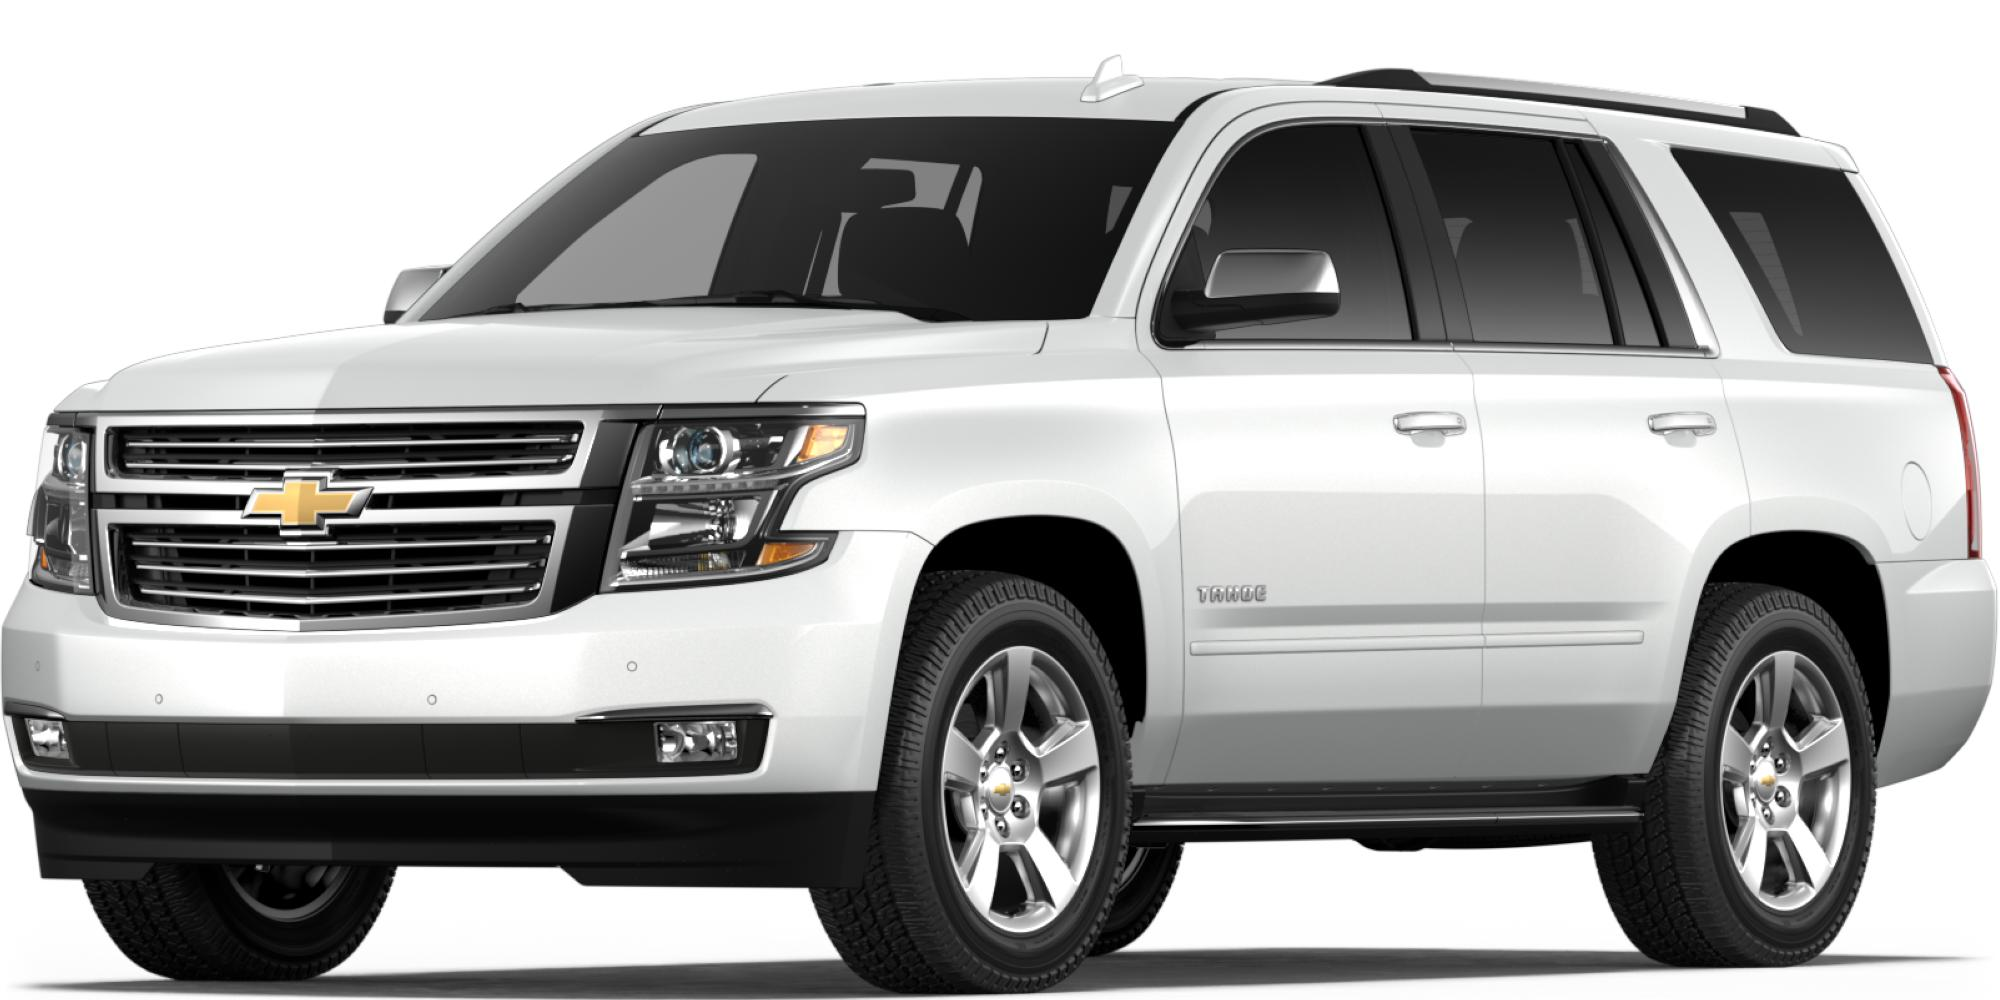 tx tahoe sealy select chevrolet models